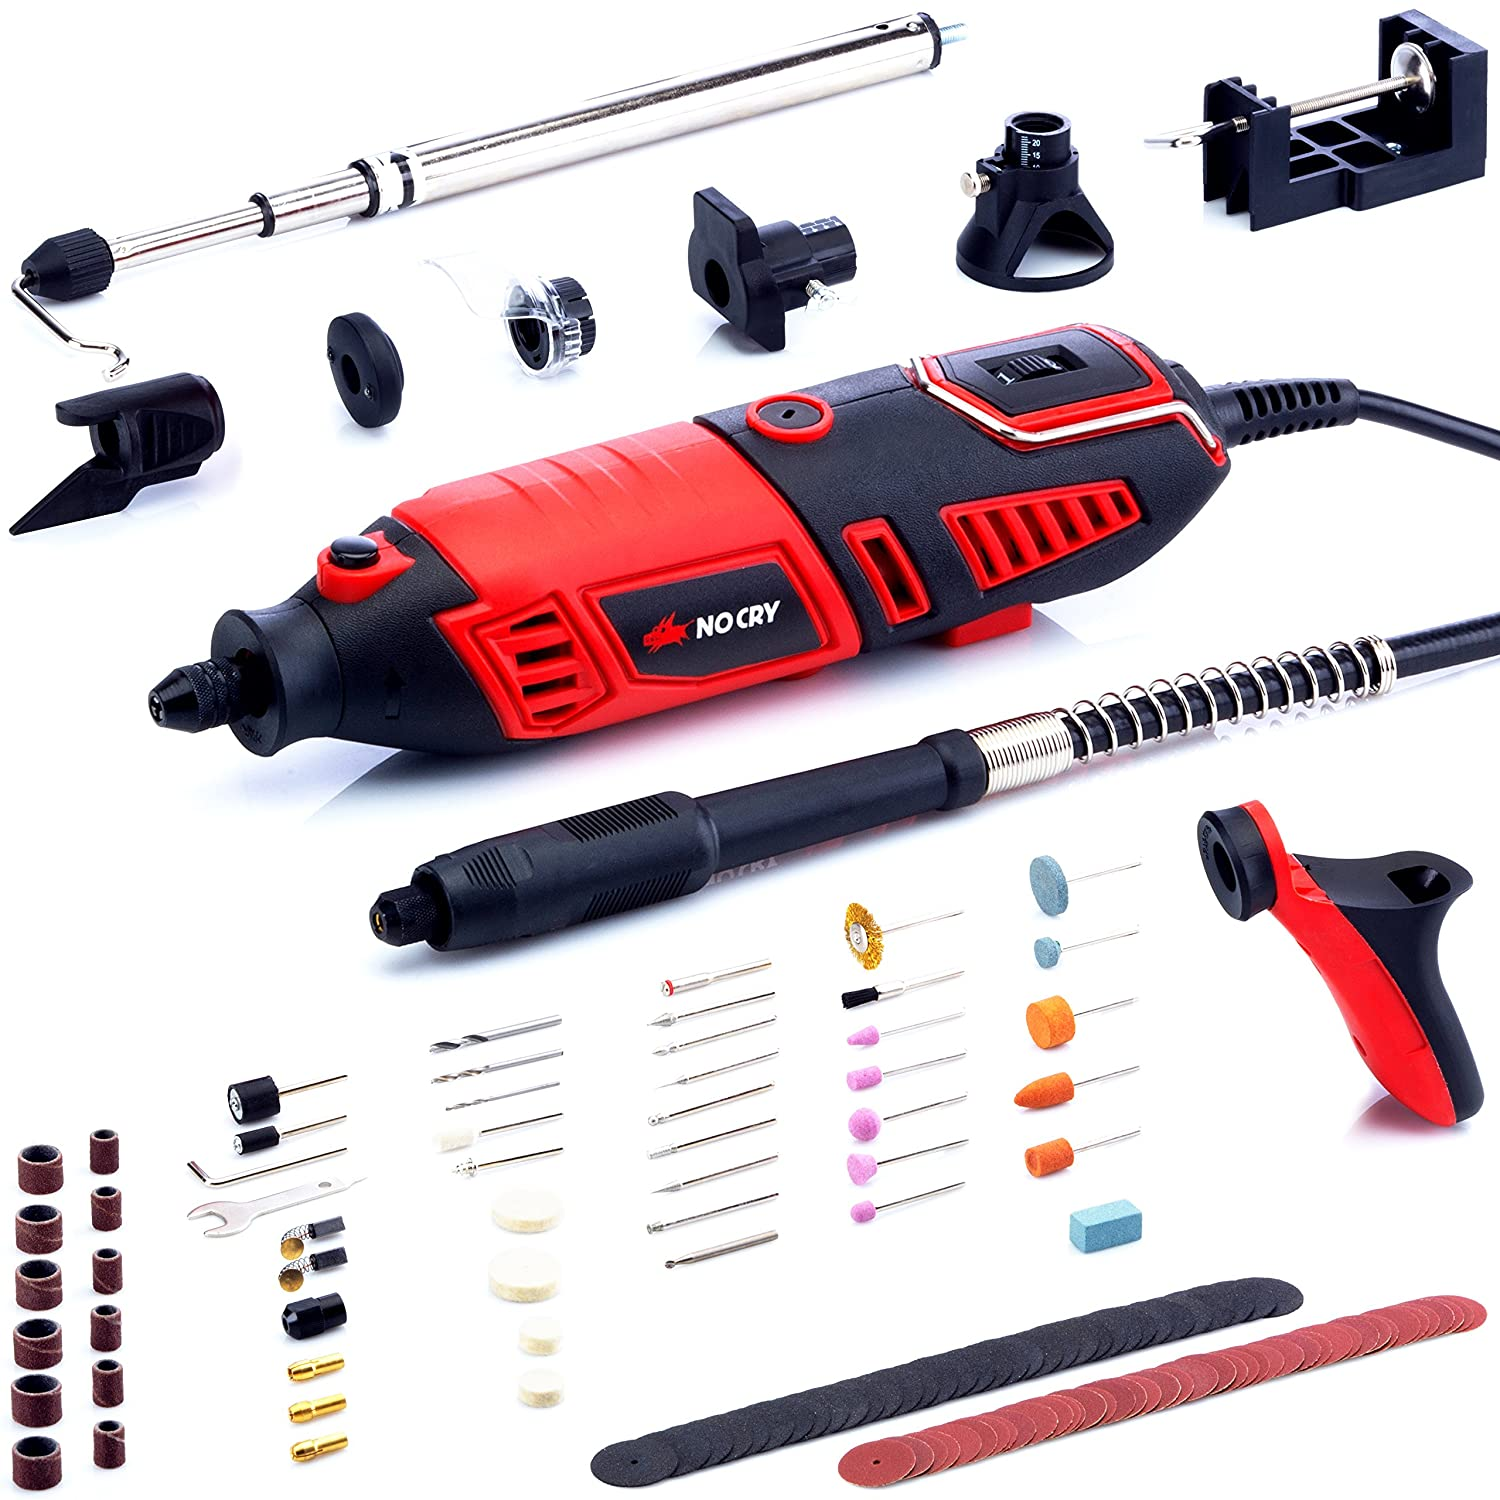 NoCry 10/125 Professional Rotary Tool Kit with Heavy Duty 170W/1.4A Electric Motor, Universal 3-Jaw Chuck, 10 Attachments & 125 Accessories Included